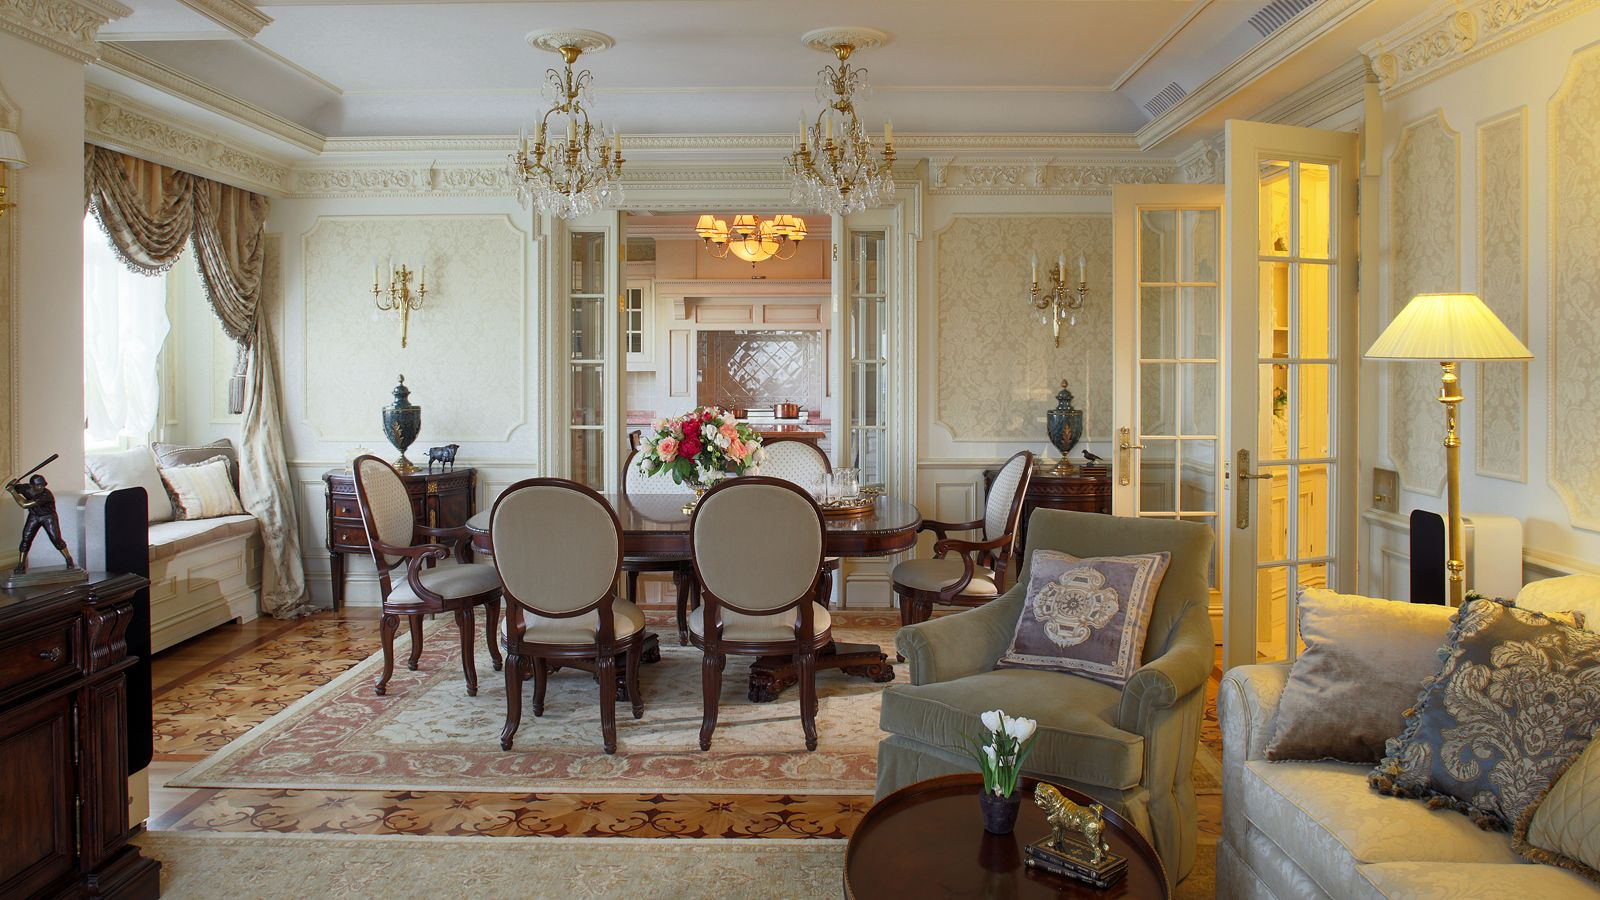 Delicieux Classicism Style In Interior Design Apartments And Other Premises:  Accessories And Decorative Objects